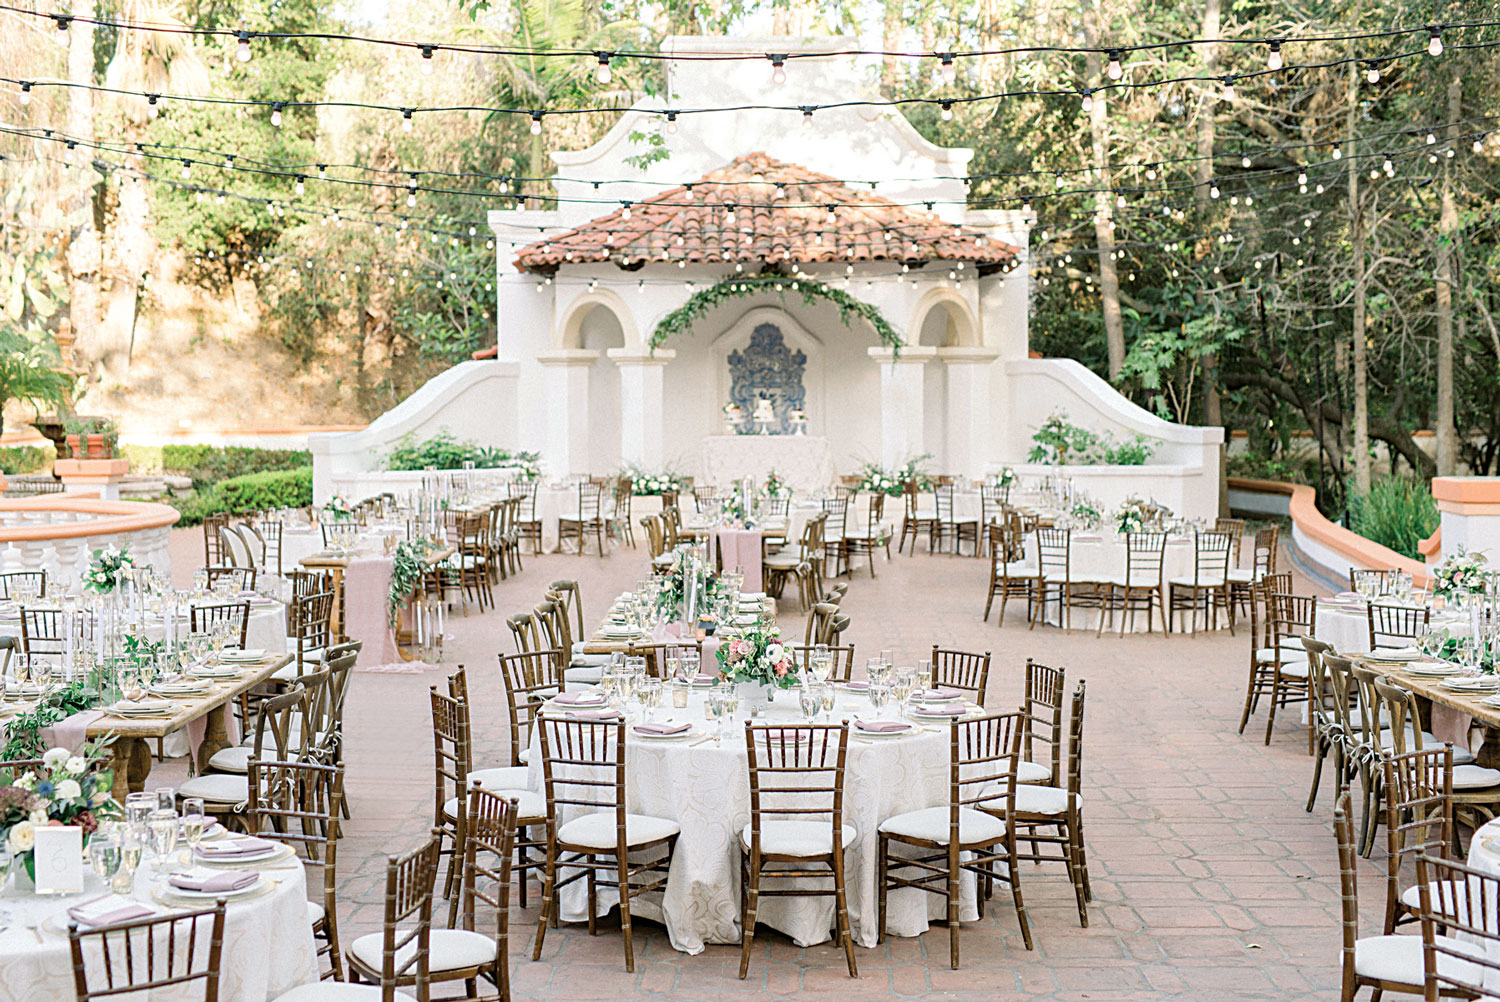 Inside Weddings magazine Spring 2019 issue rancho las lomas wedding reception courtyard fountain